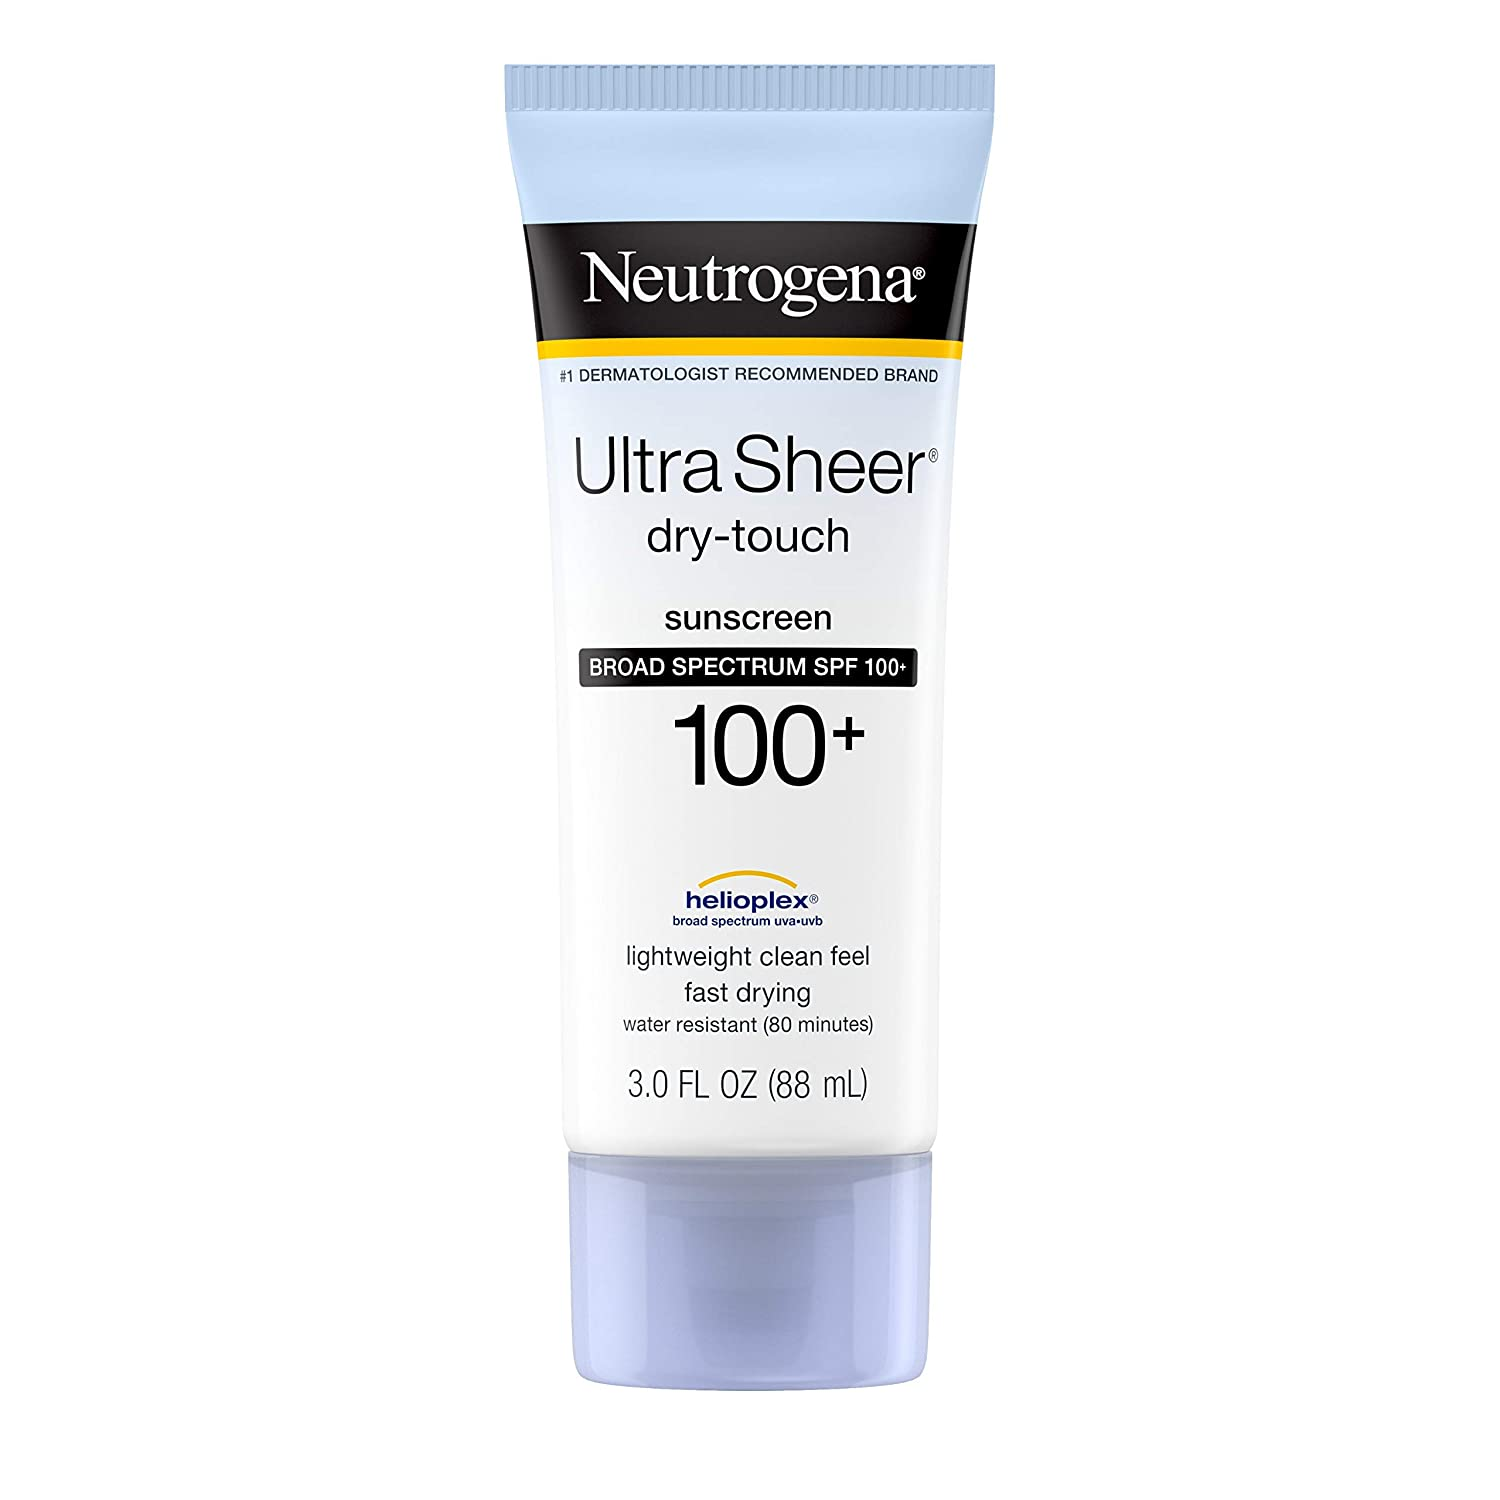 Neutrogena Ultra Sheer Dry-Touch Water Resistant and Non-Greasy Sunscreen Lotion; best sunscreen for tattoos